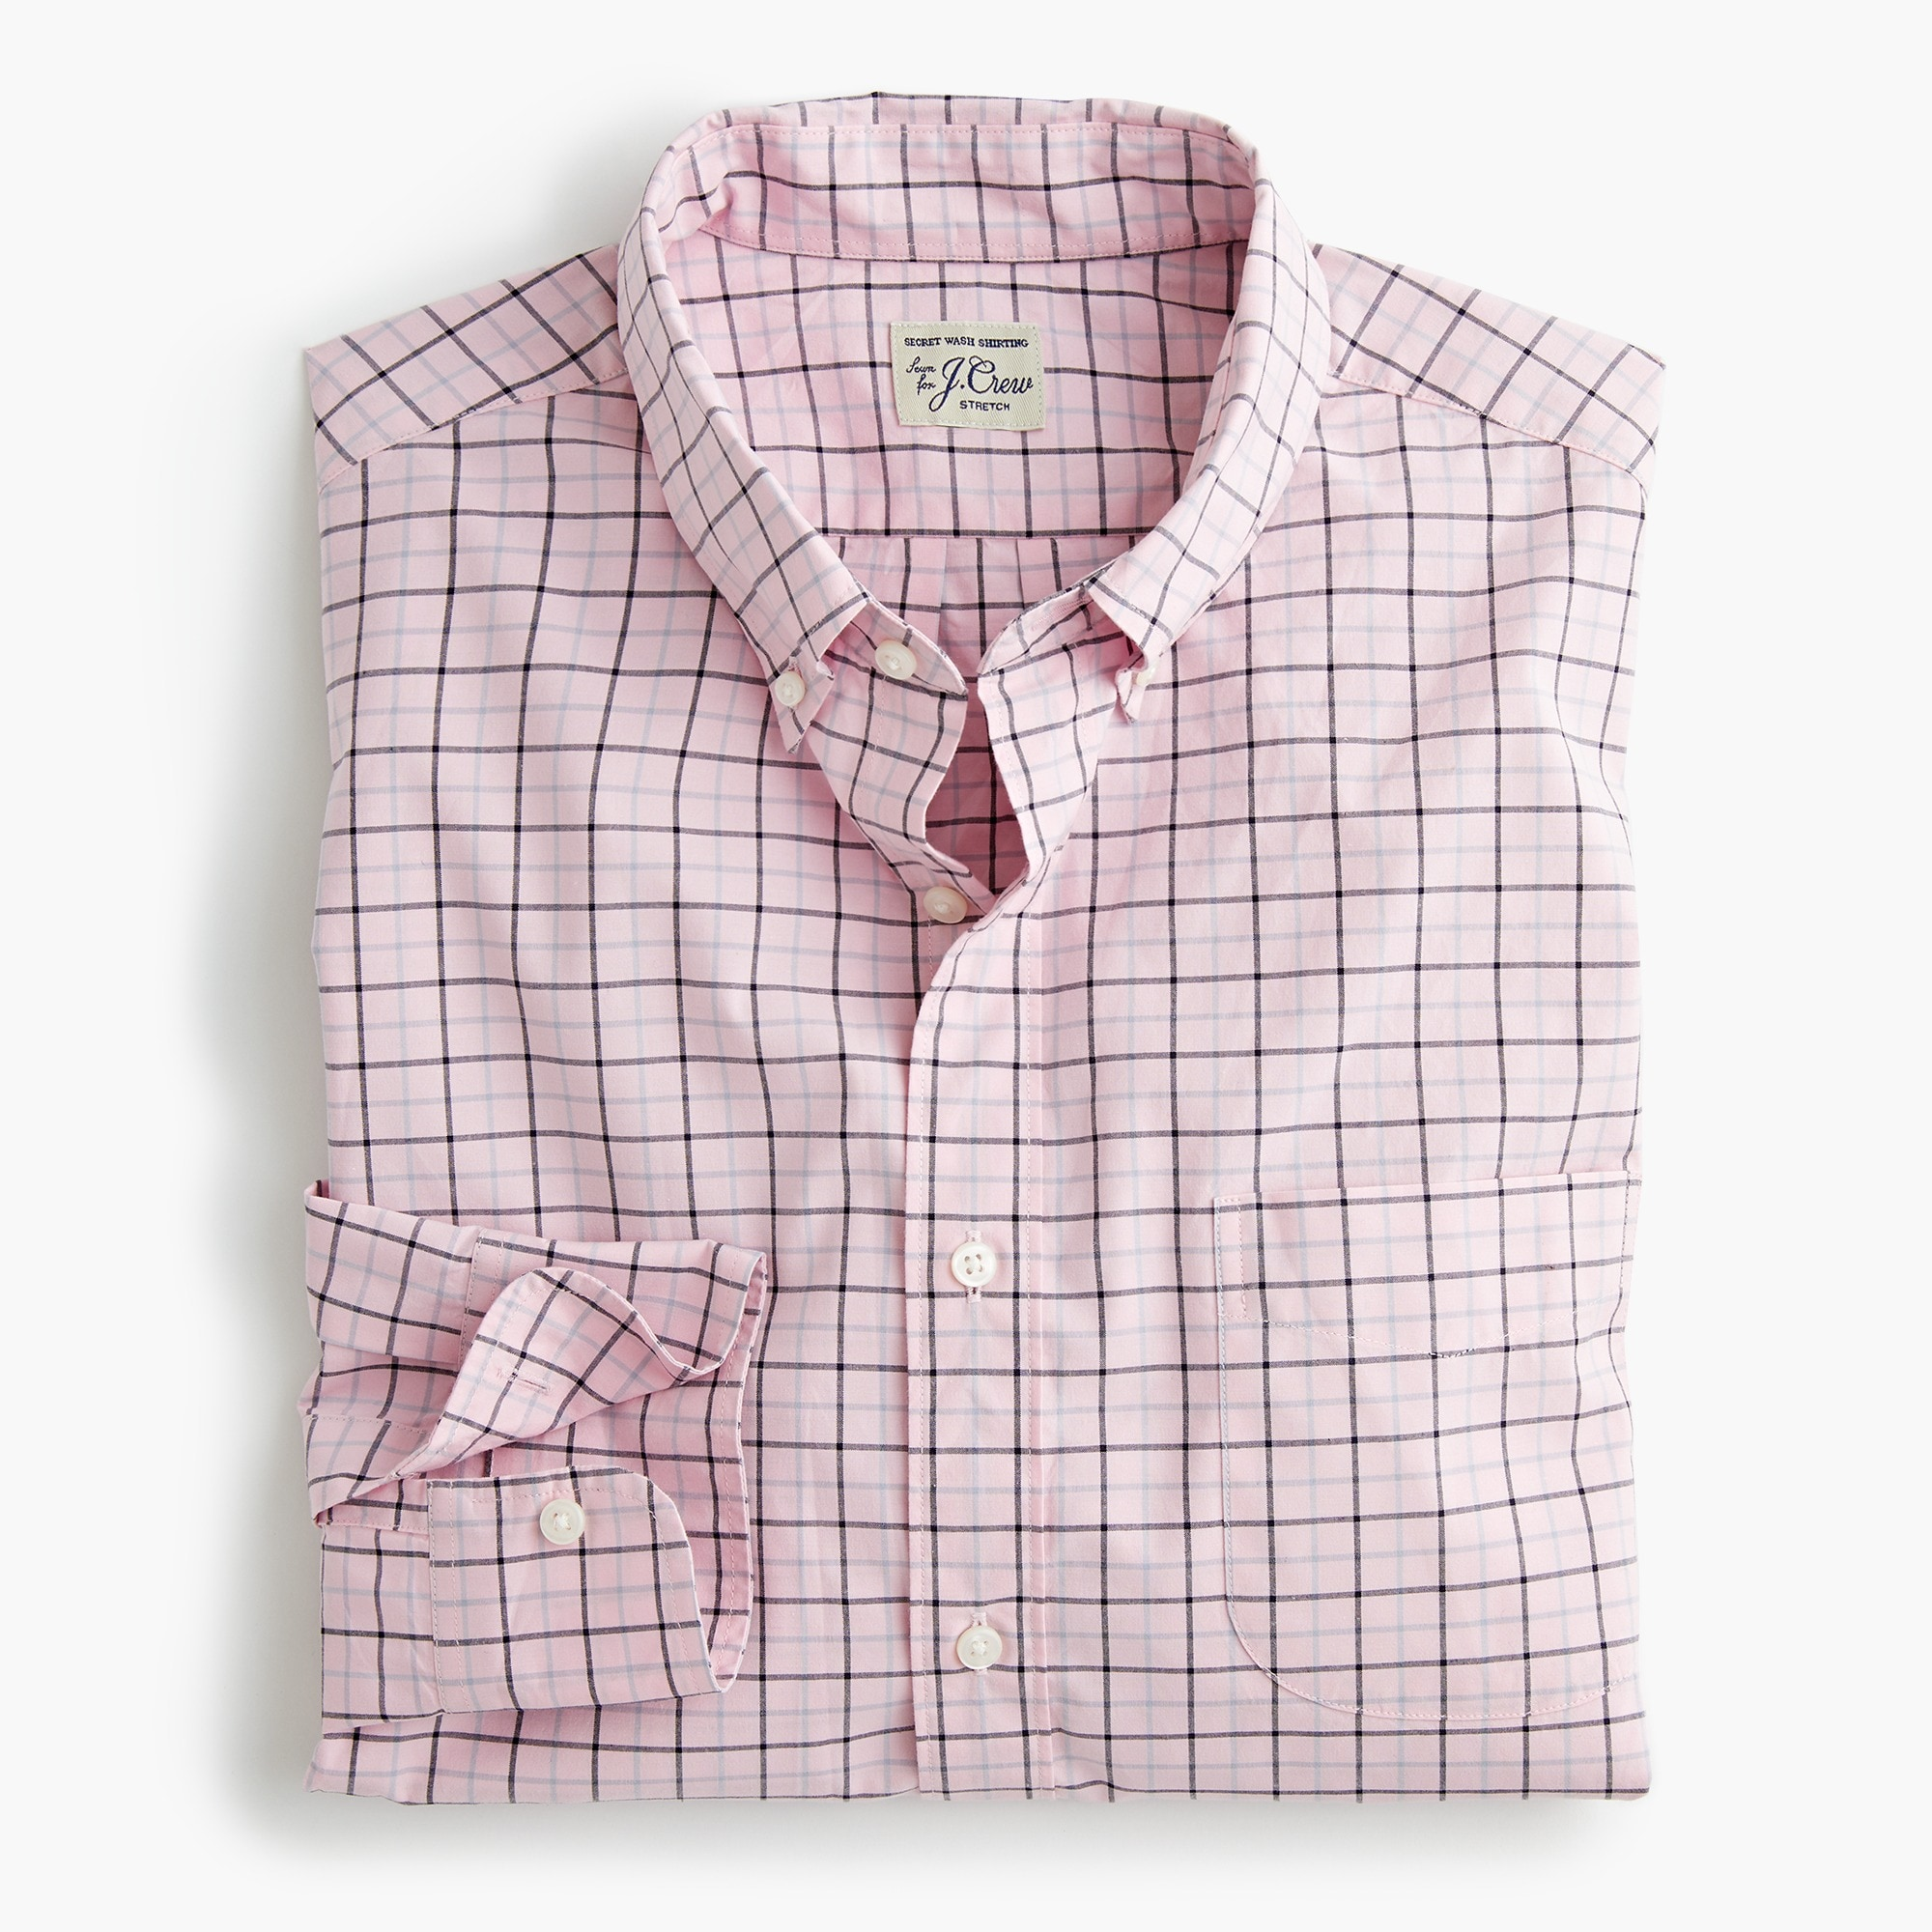 mens Stretch Secret Wash shirt in tattersall